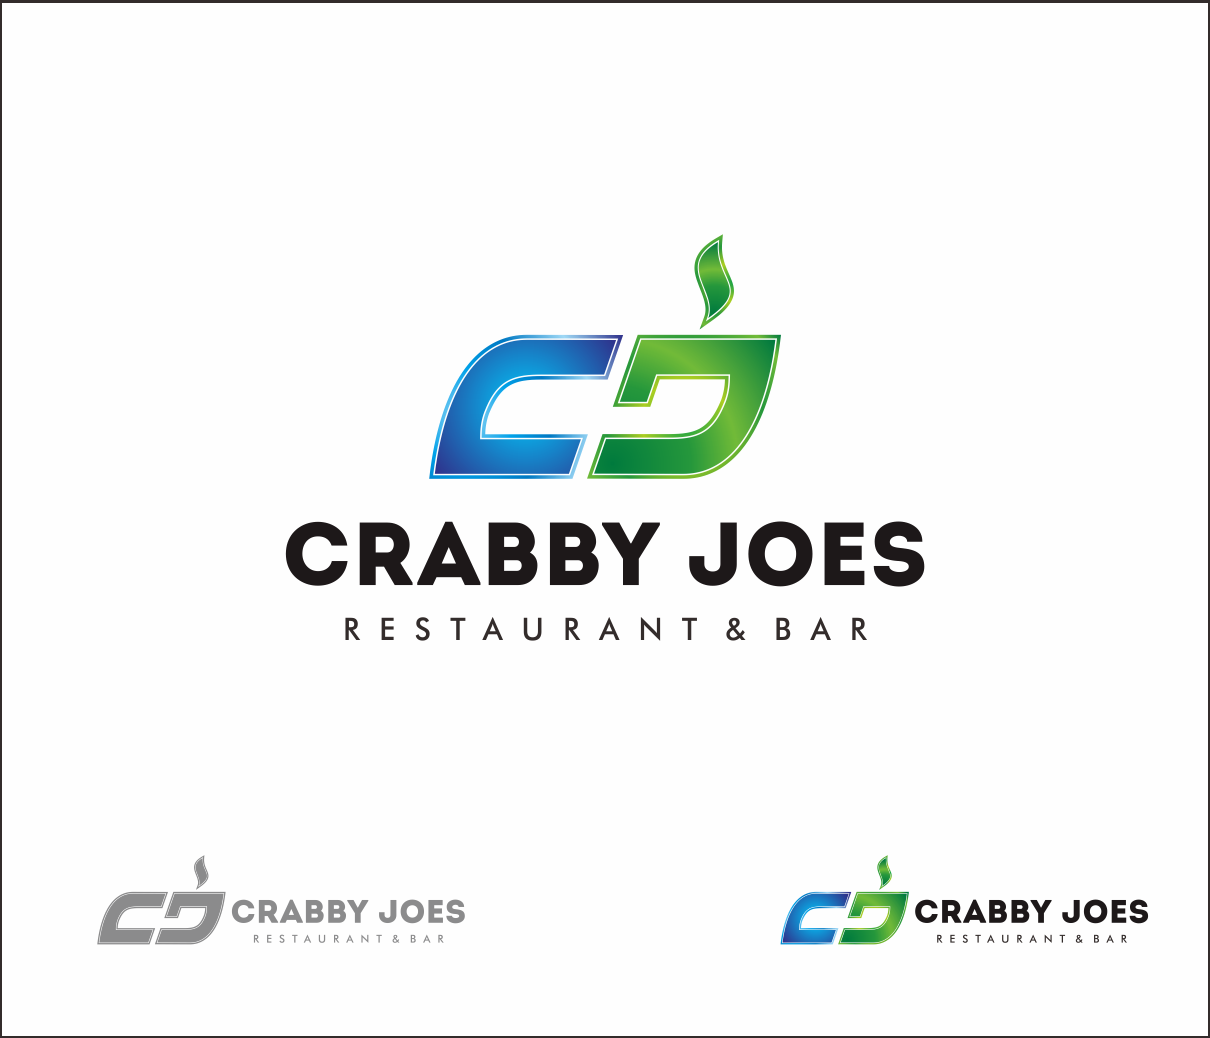 Logo Design by Armada Jamaluddin - Entry No. 105 in the Logo Design Contest Inspiring Logo Design for Cj's.